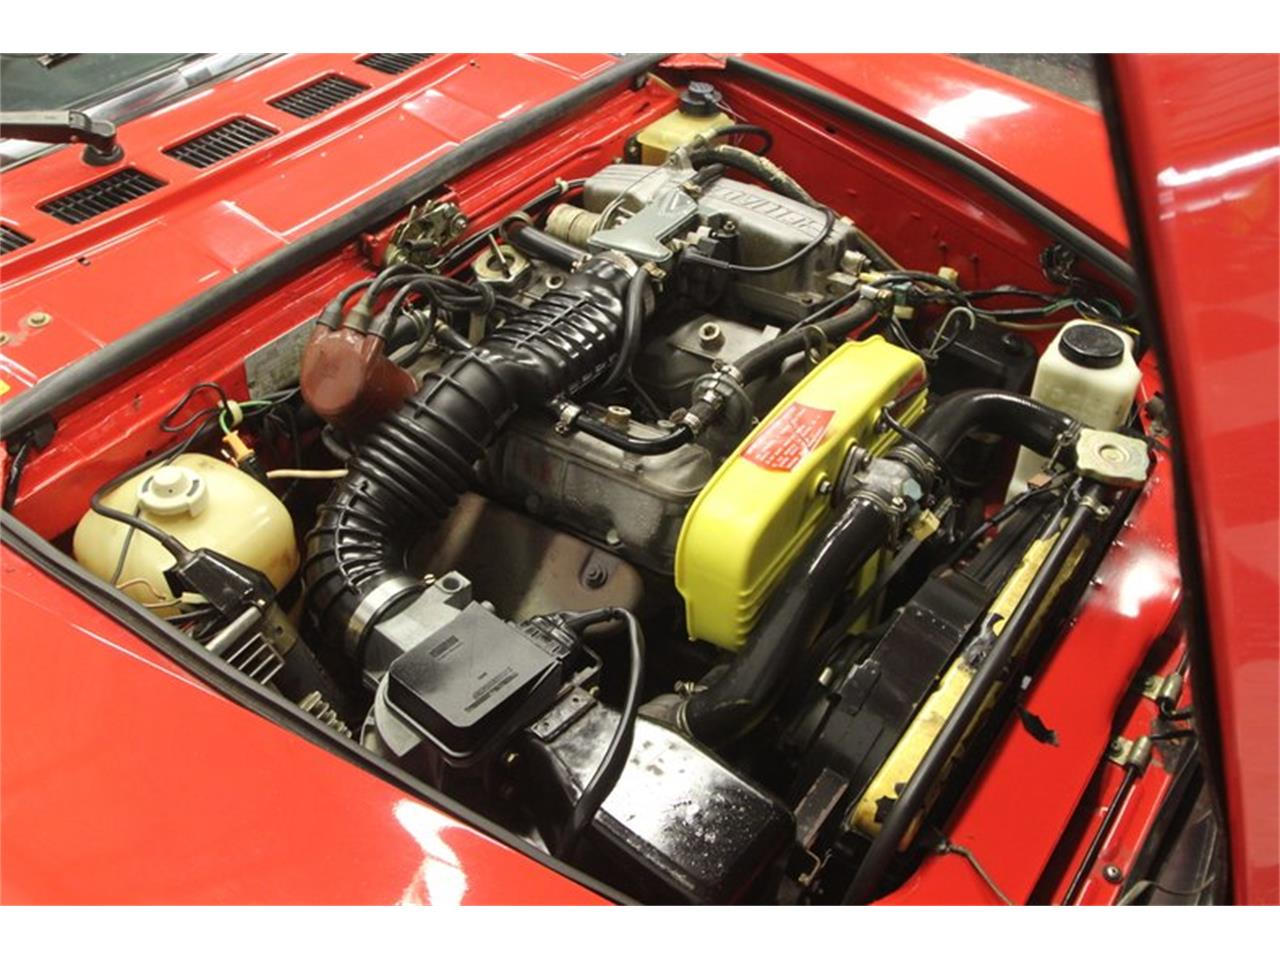 Large Picture of 1980 Spider located in Lutz Florida - $21,995.00 Offered by Streetside Classics - Tampa - Q5HU